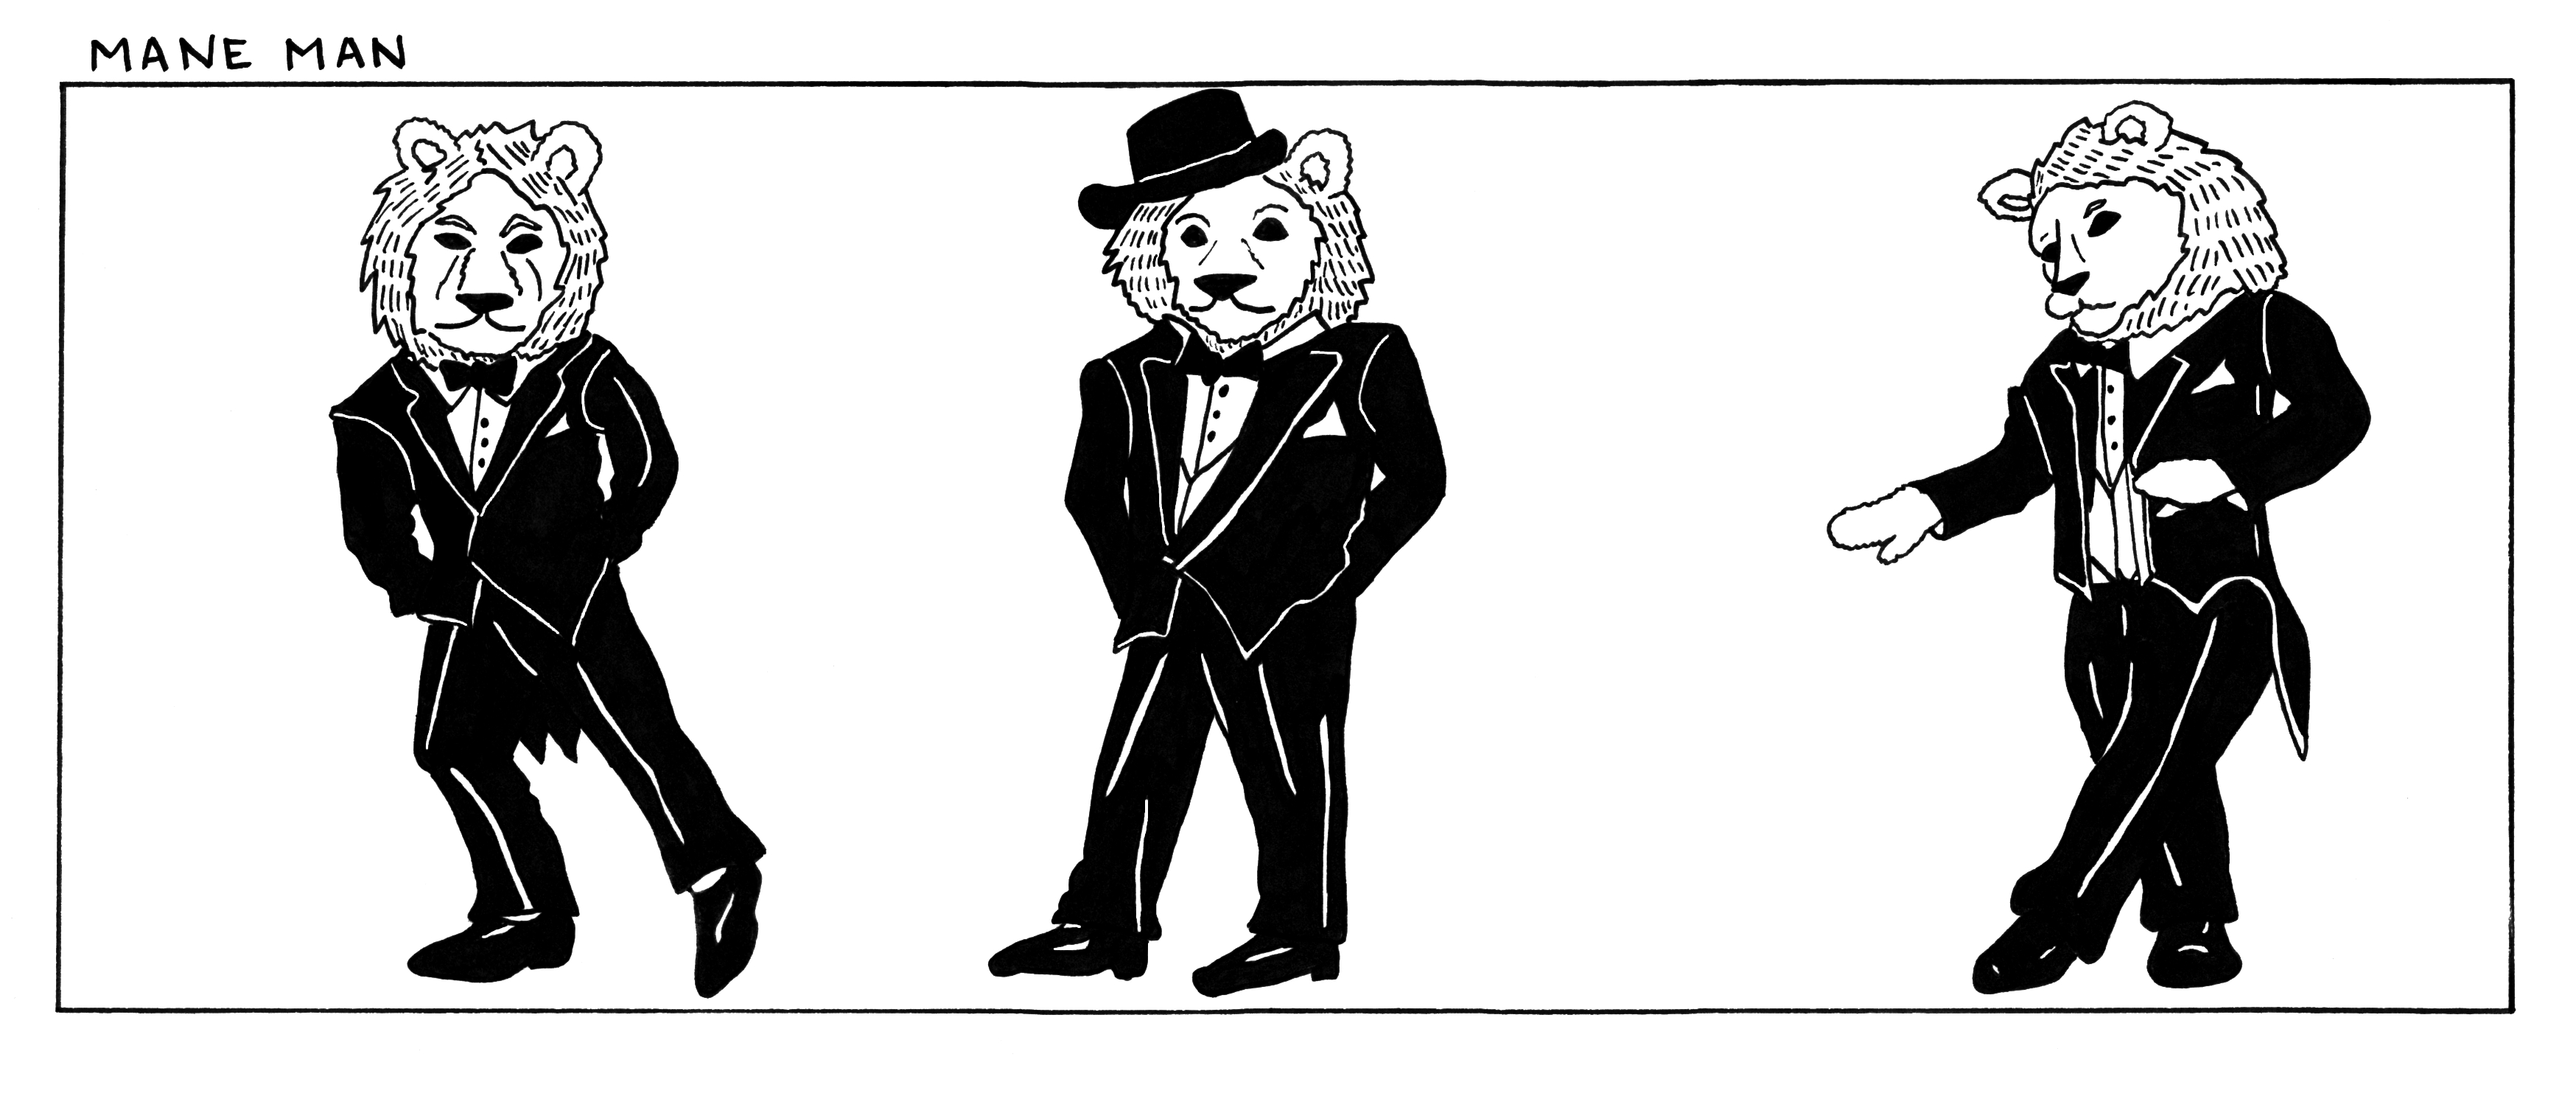 The dapper anthropomorphic lion of your dreams.